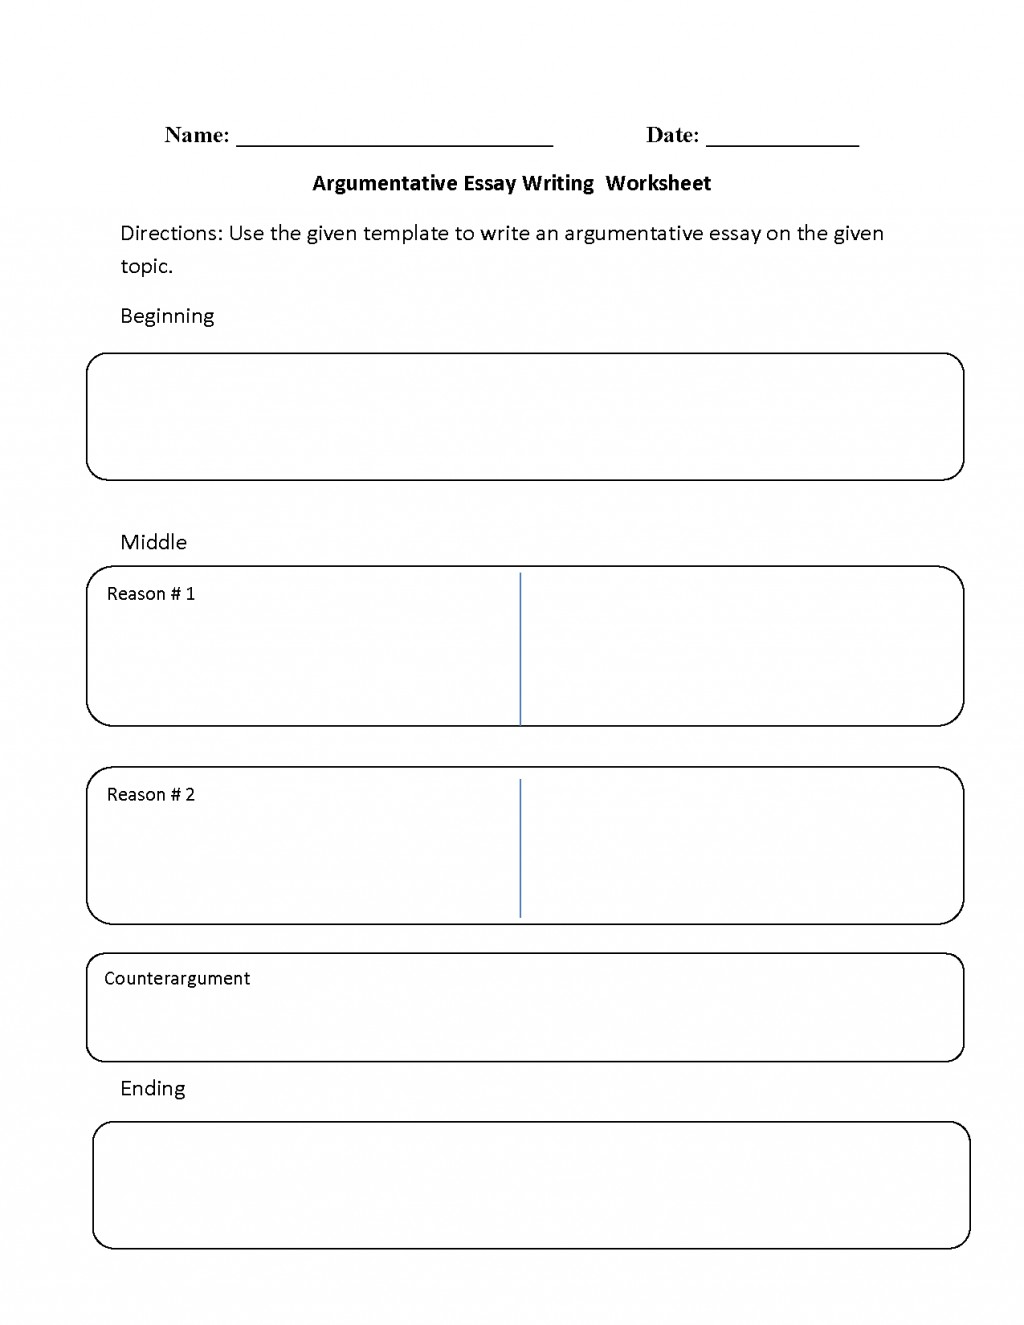 011 Argumentative Essay Writing Worksheet Example Transition Surprising Words Pdf Large